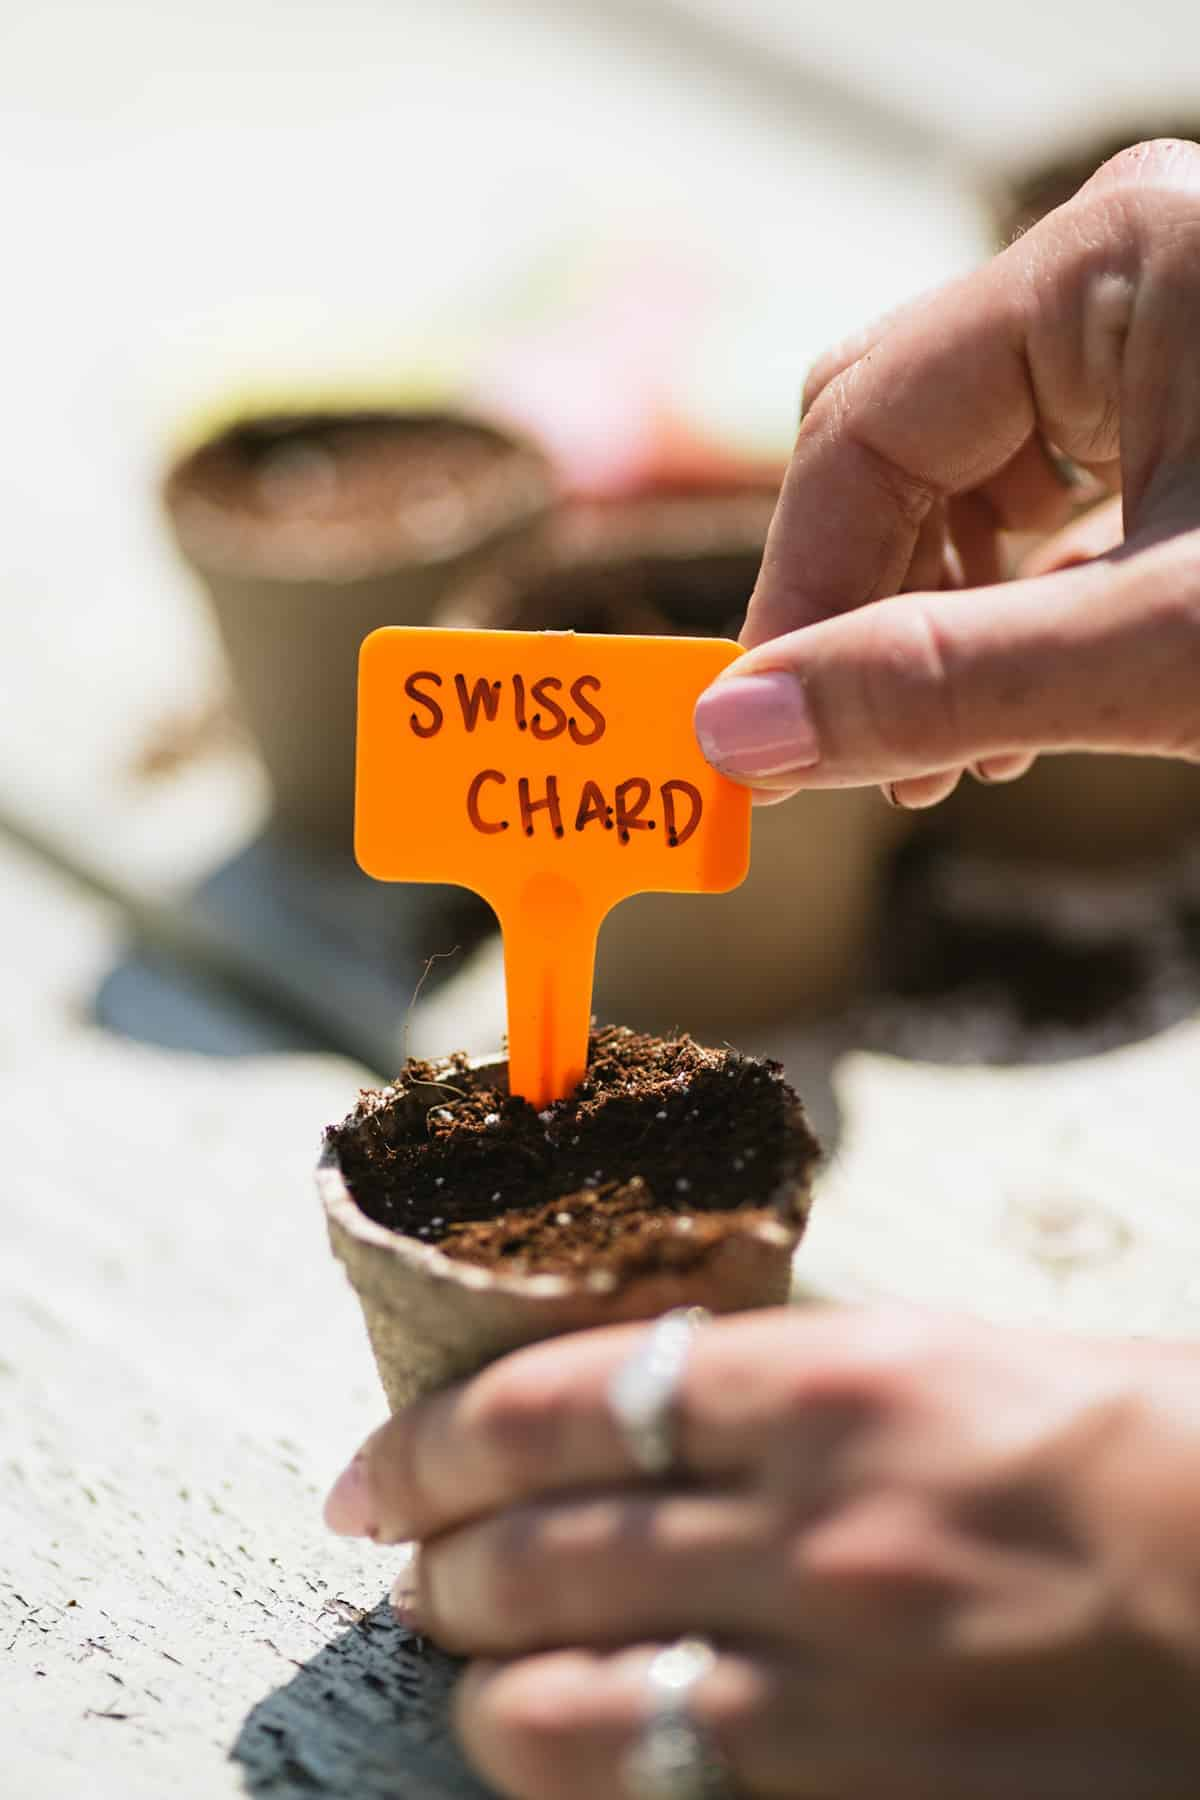 Hands placing a plant marker labeled Swiss Chard into a planted peat pot.